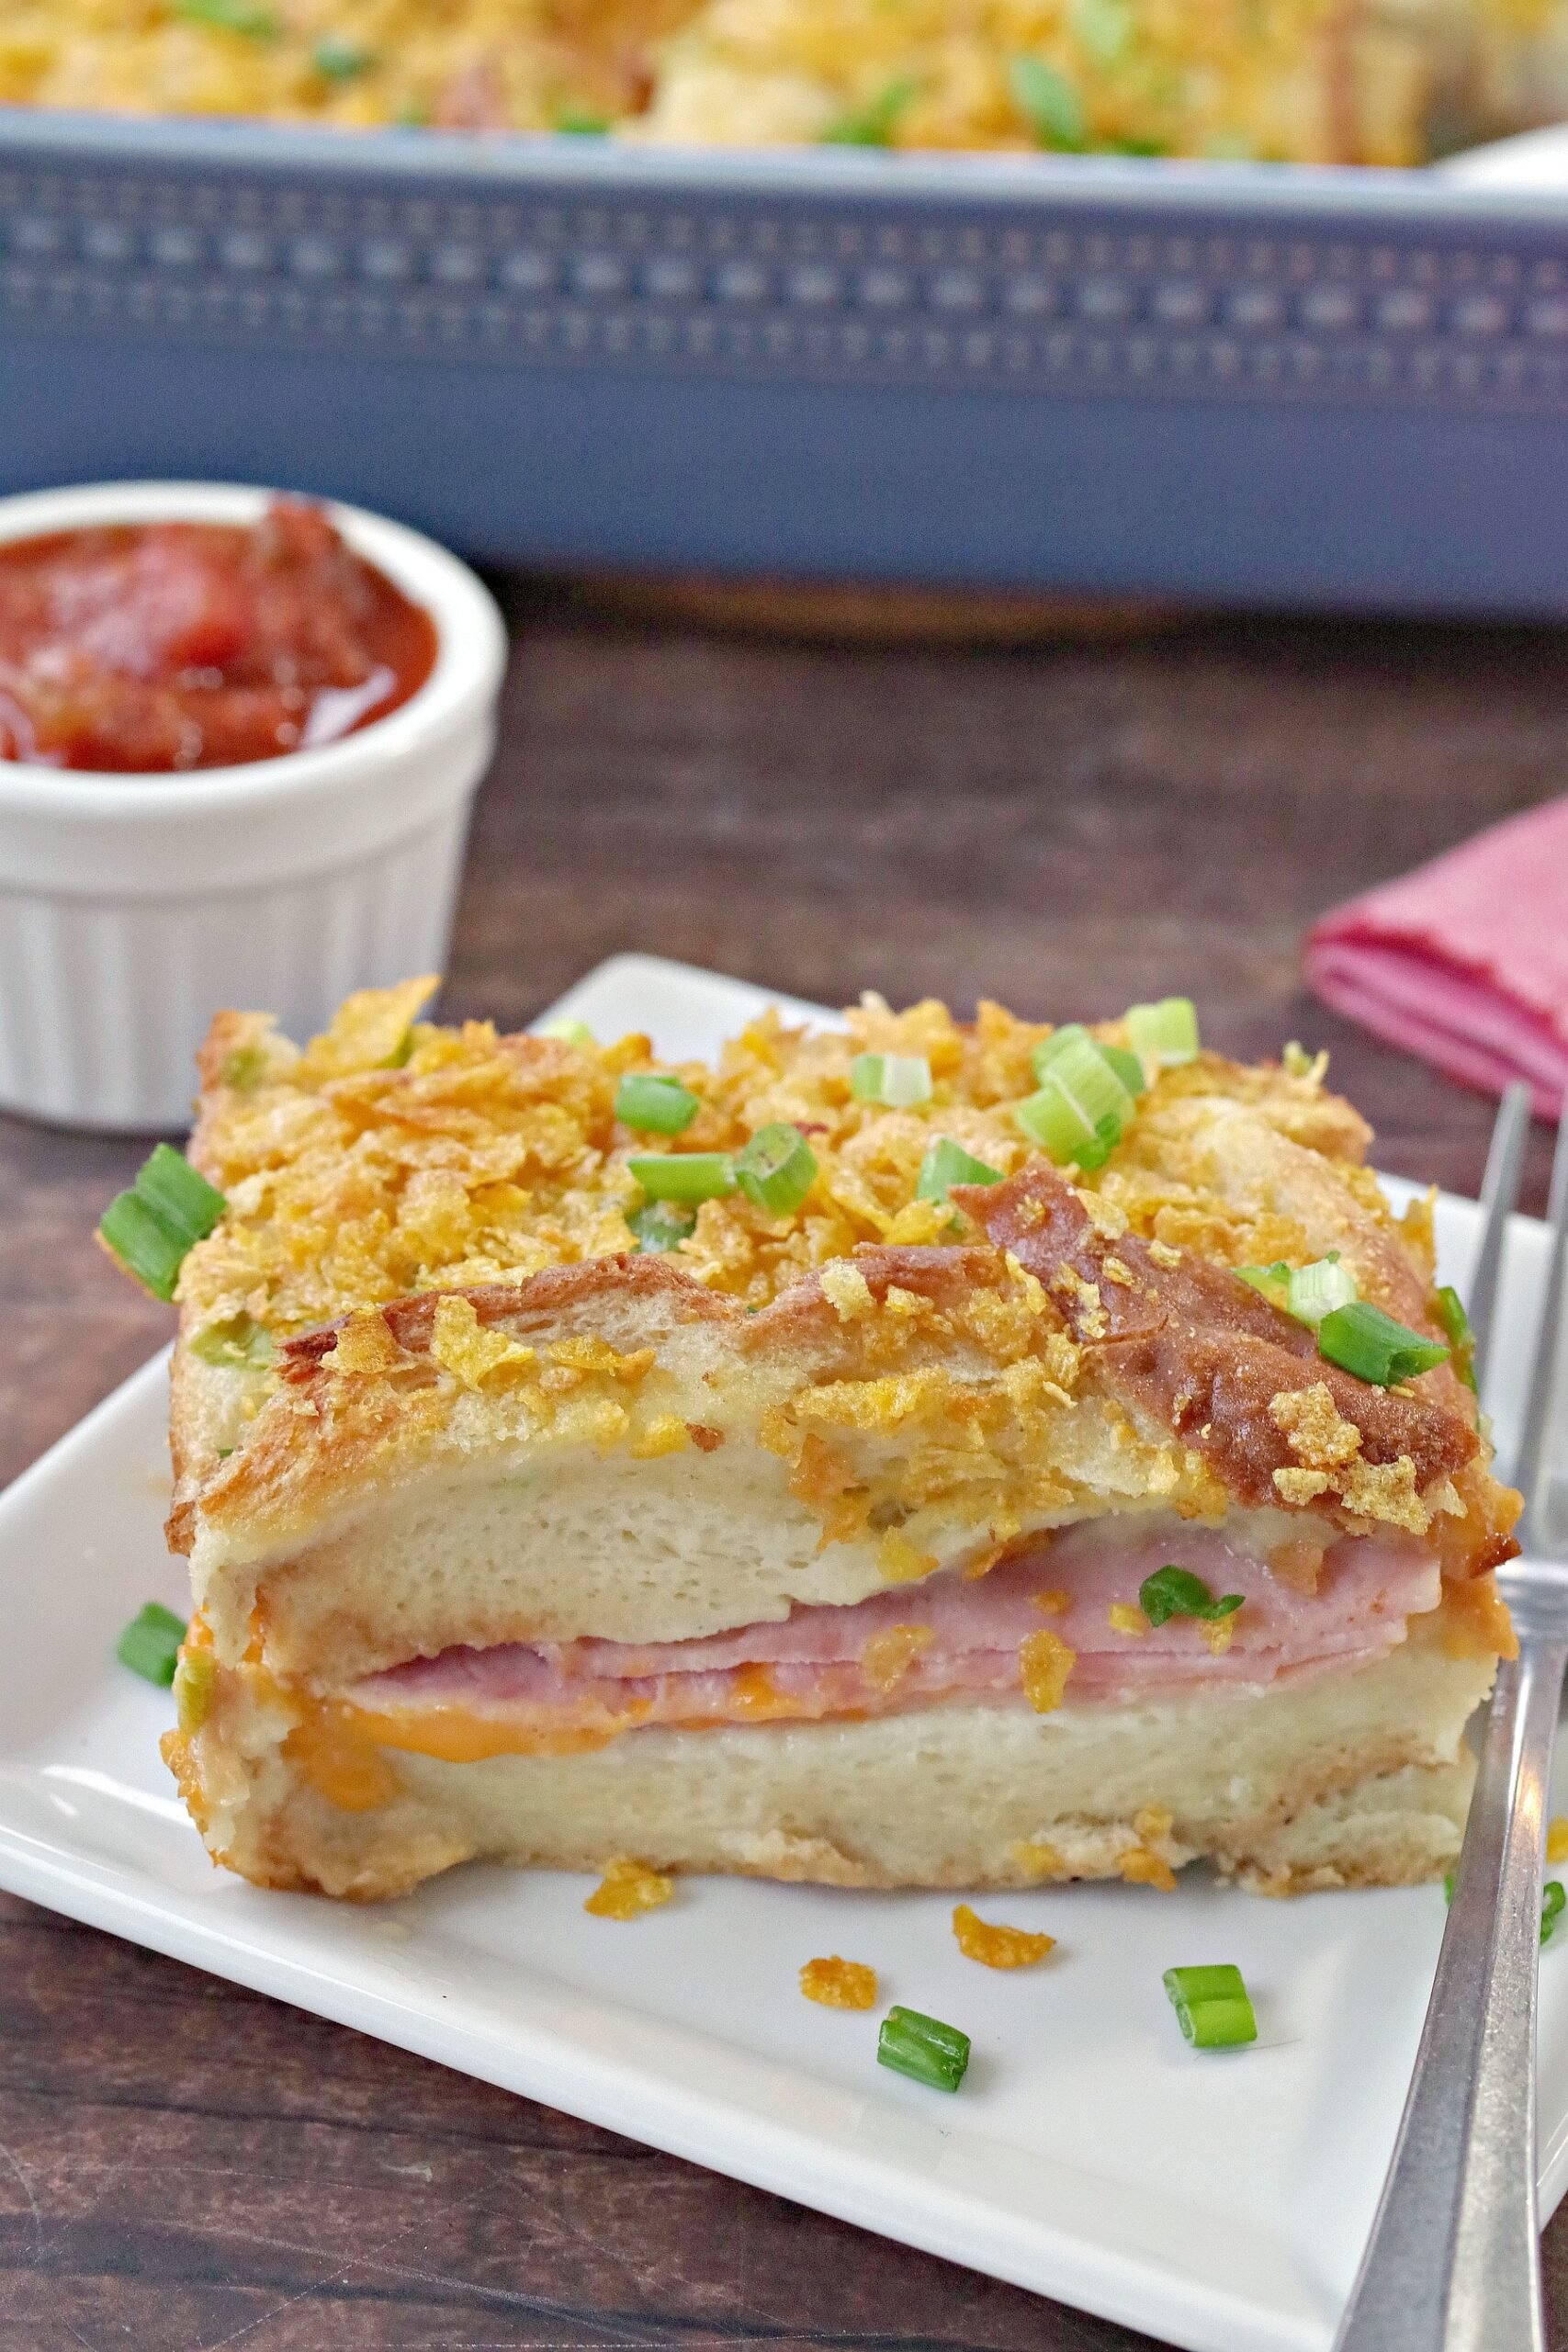 This Christmas Morning Casserole (also known as Wife Saver) is a savory overnight breakfast casserole with layers of bread, ham, cheese, eggs, and corn flakes. It's easy to throw together the night before and pop in the oven for a delicious Christmas morning brunch.